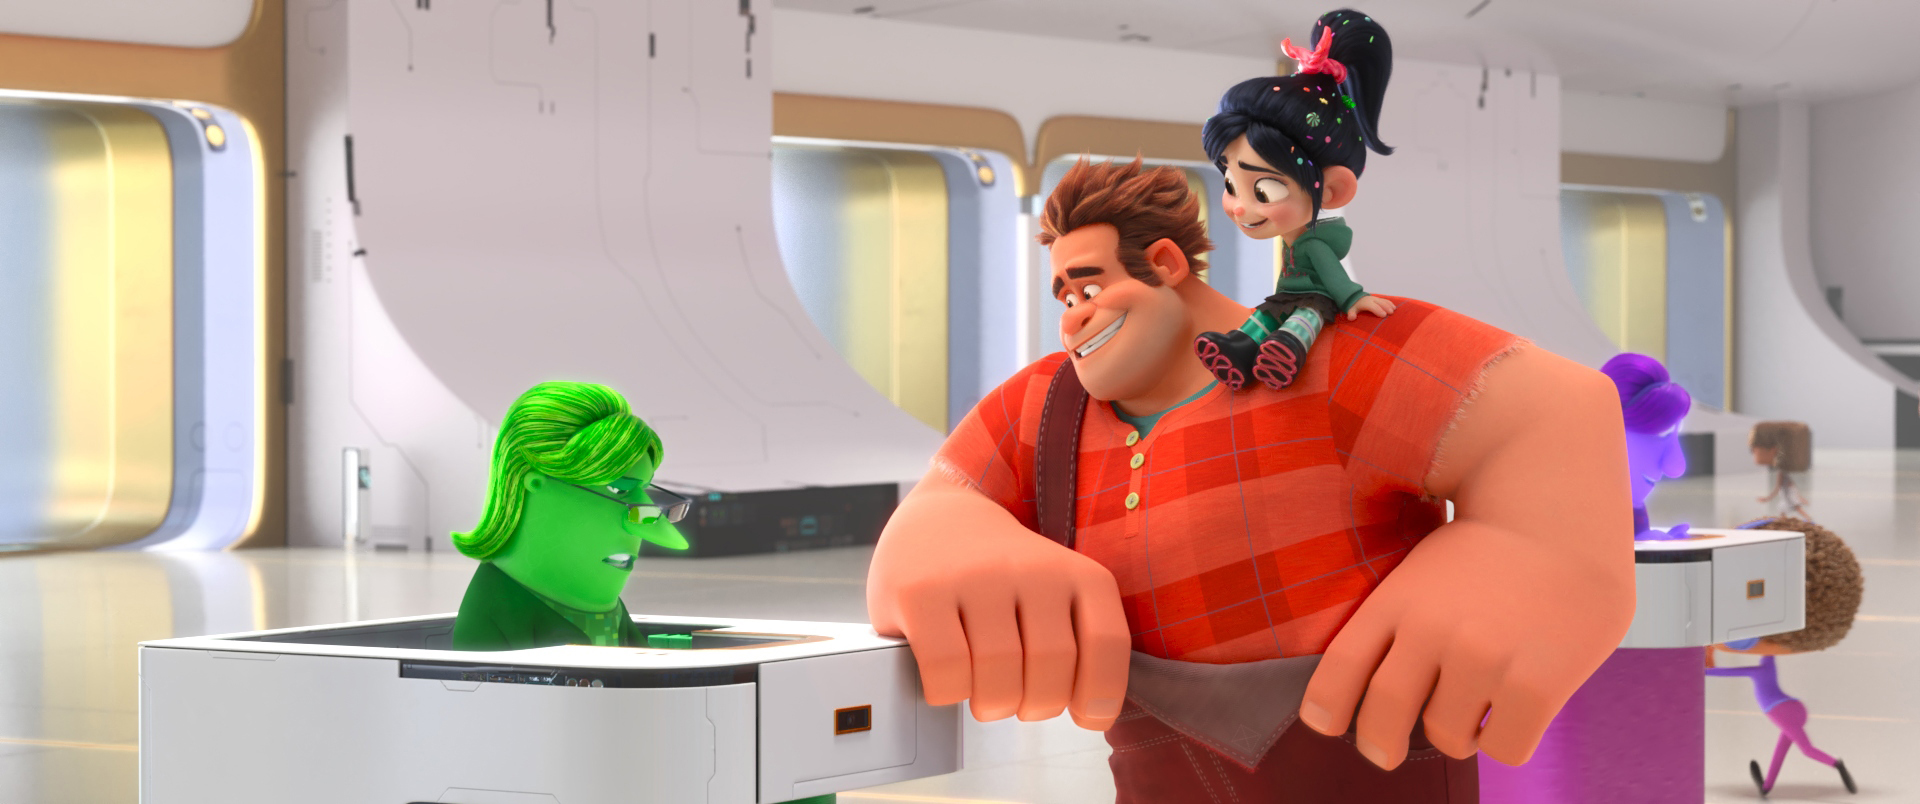 Behind The Scenes Of Ralph Breaks The Internet The Nerds Of Color